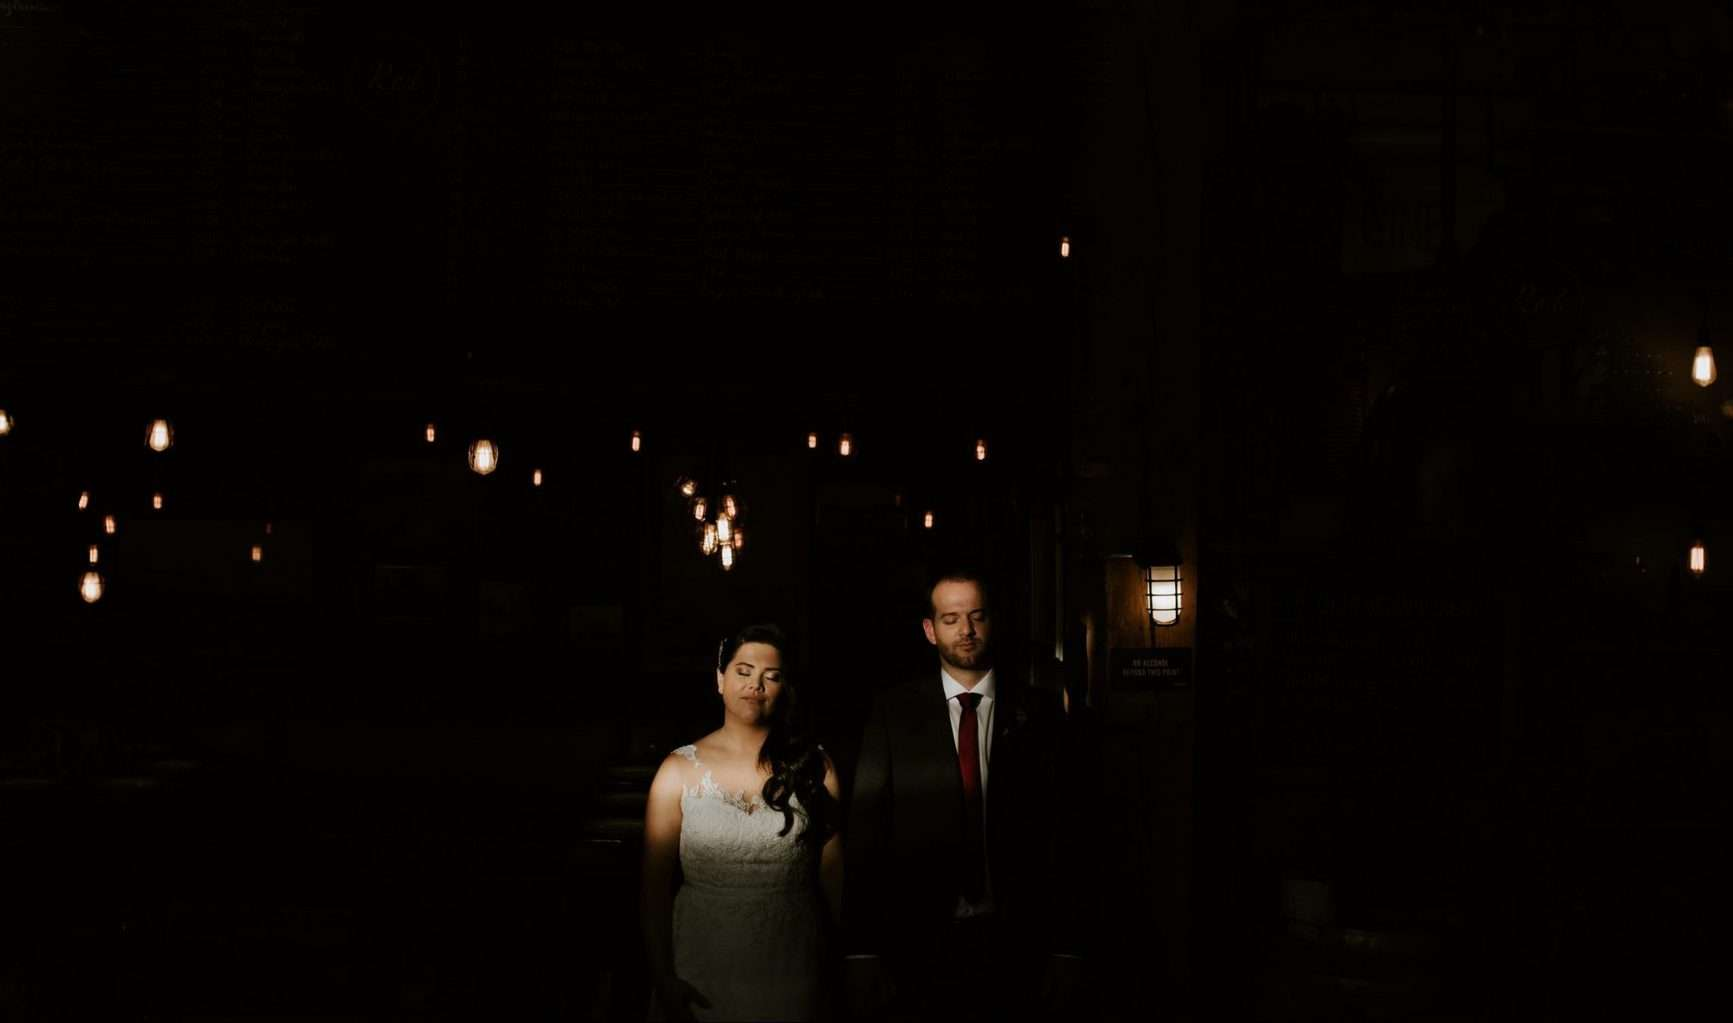 Bride and Groom at their wedding at the Settlement Building in Vancouver.